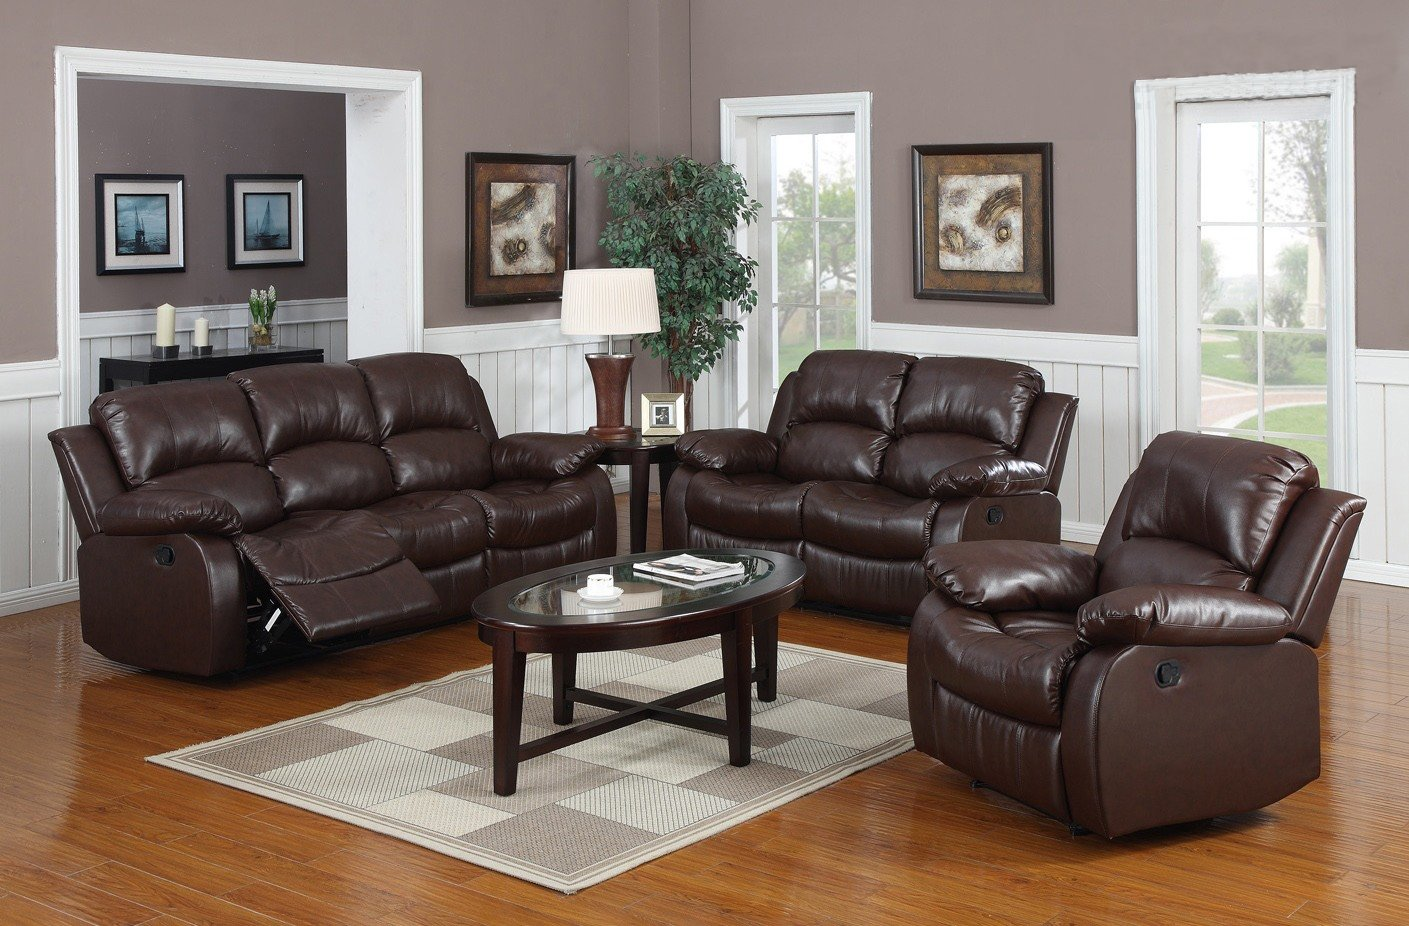 living kitchen set room com piece in beverly espresso sofa brown amazon dp dining leather abbyson